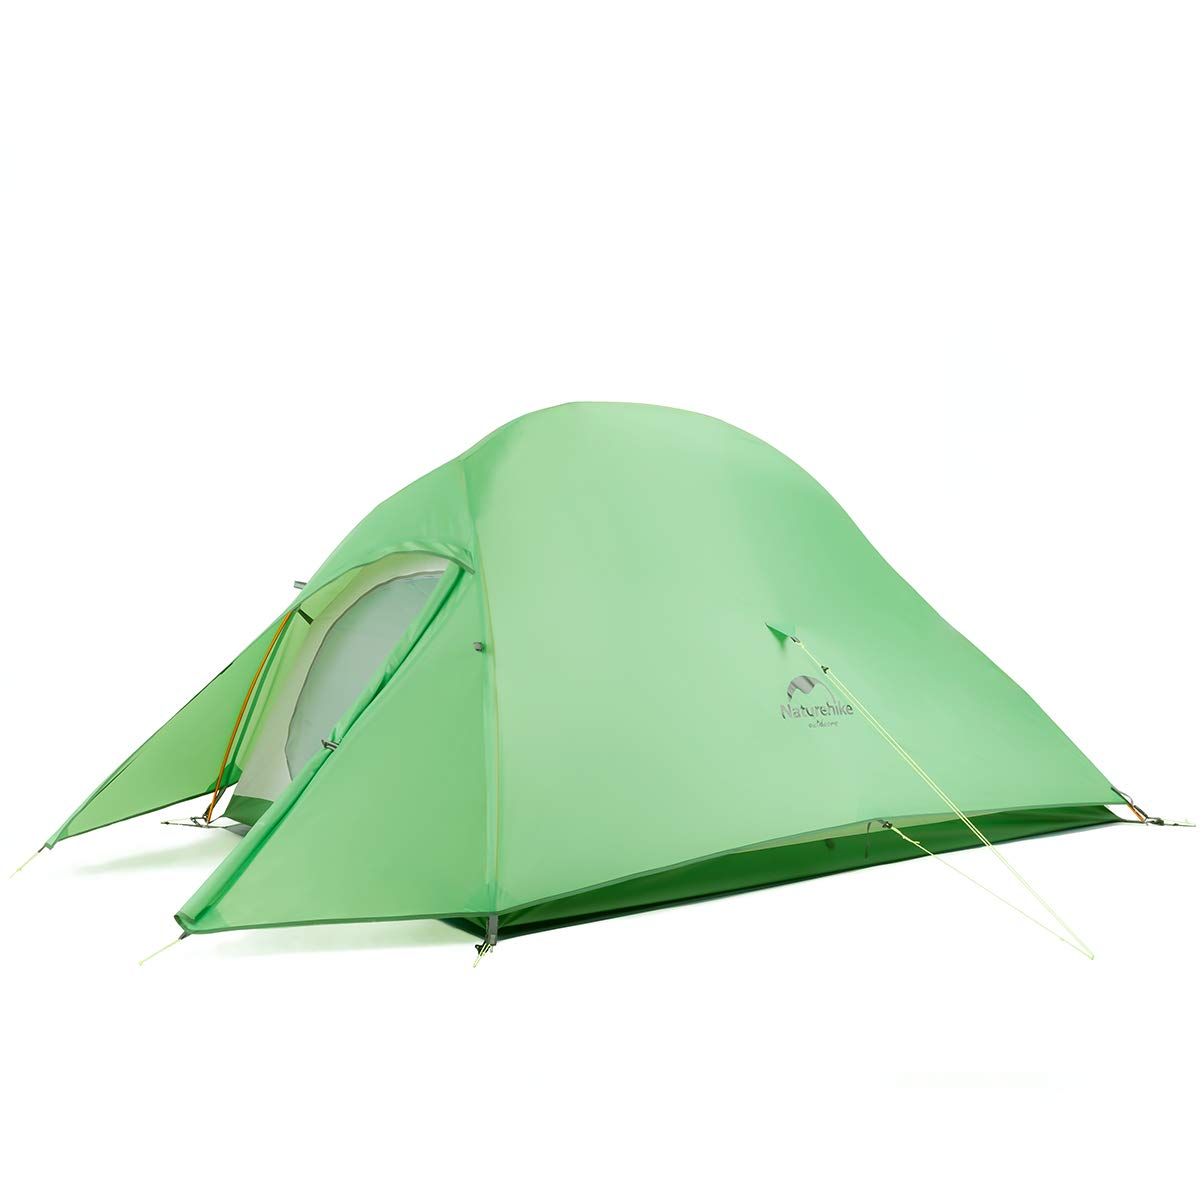 Naturehike Cloud-Up 1, 2 and 3 Person Lightweight Backpacking Tent with Footprint - 4 Season Free Standing Dome Camping Hiking Waterproof Backpack Tents by Naturehike